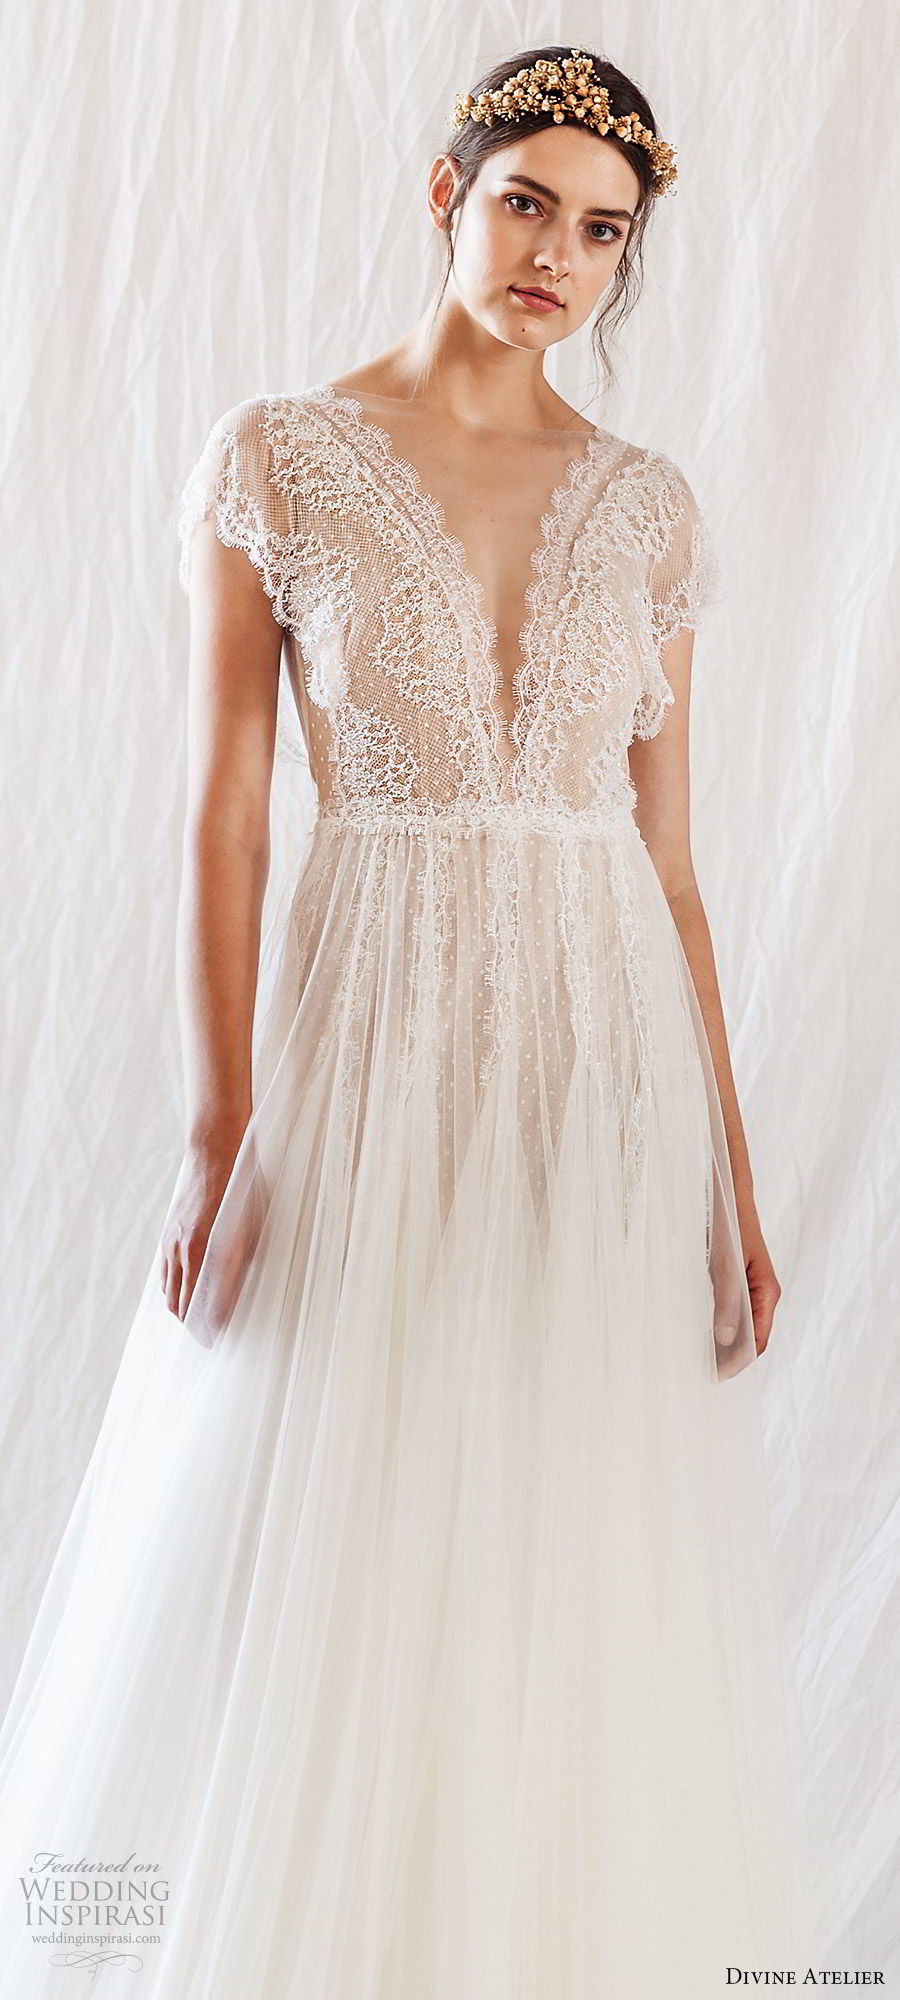 divine atelier 2019 bridal illusion cap sleeves plunging v neck sheer bodice lace a line wedding dress (7) vback sweep train romantic whimsical mv